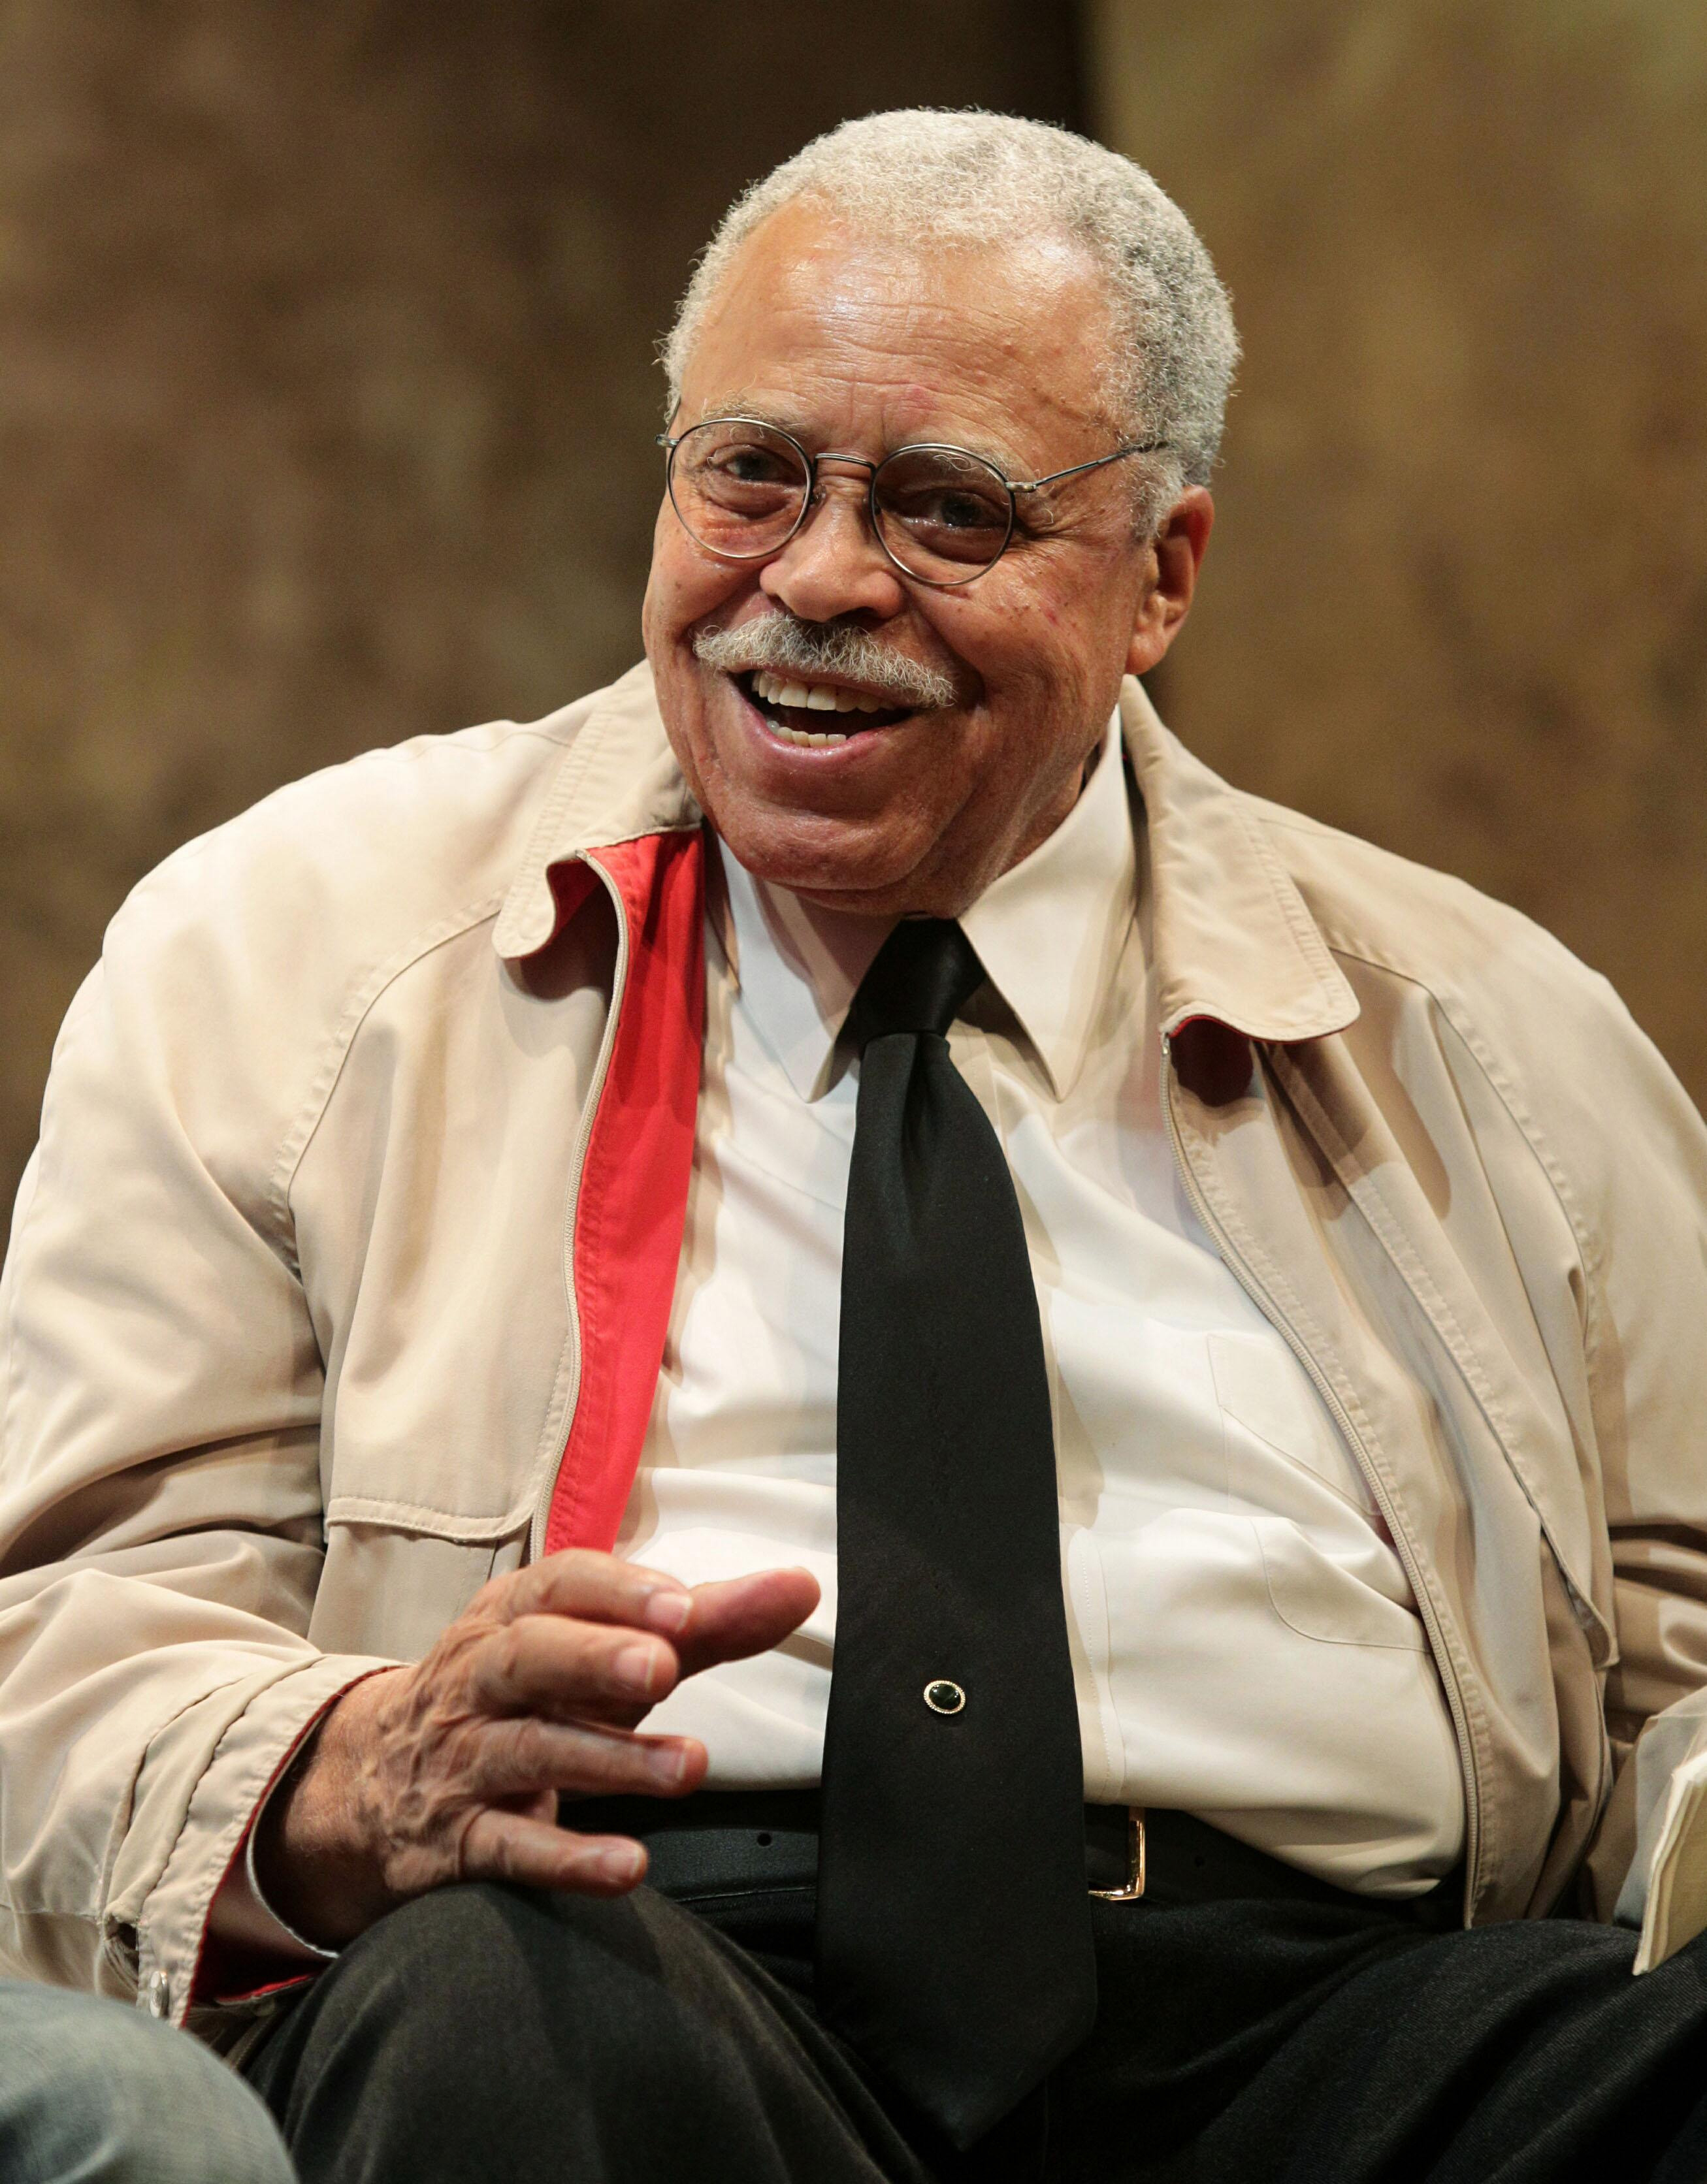 james earl jones a voice in James earl jones is a long-time character actor and voice actor with a distinctive deep voice, most well known to sci-fi fans as the voice of darth vader in the star wars series of movies.